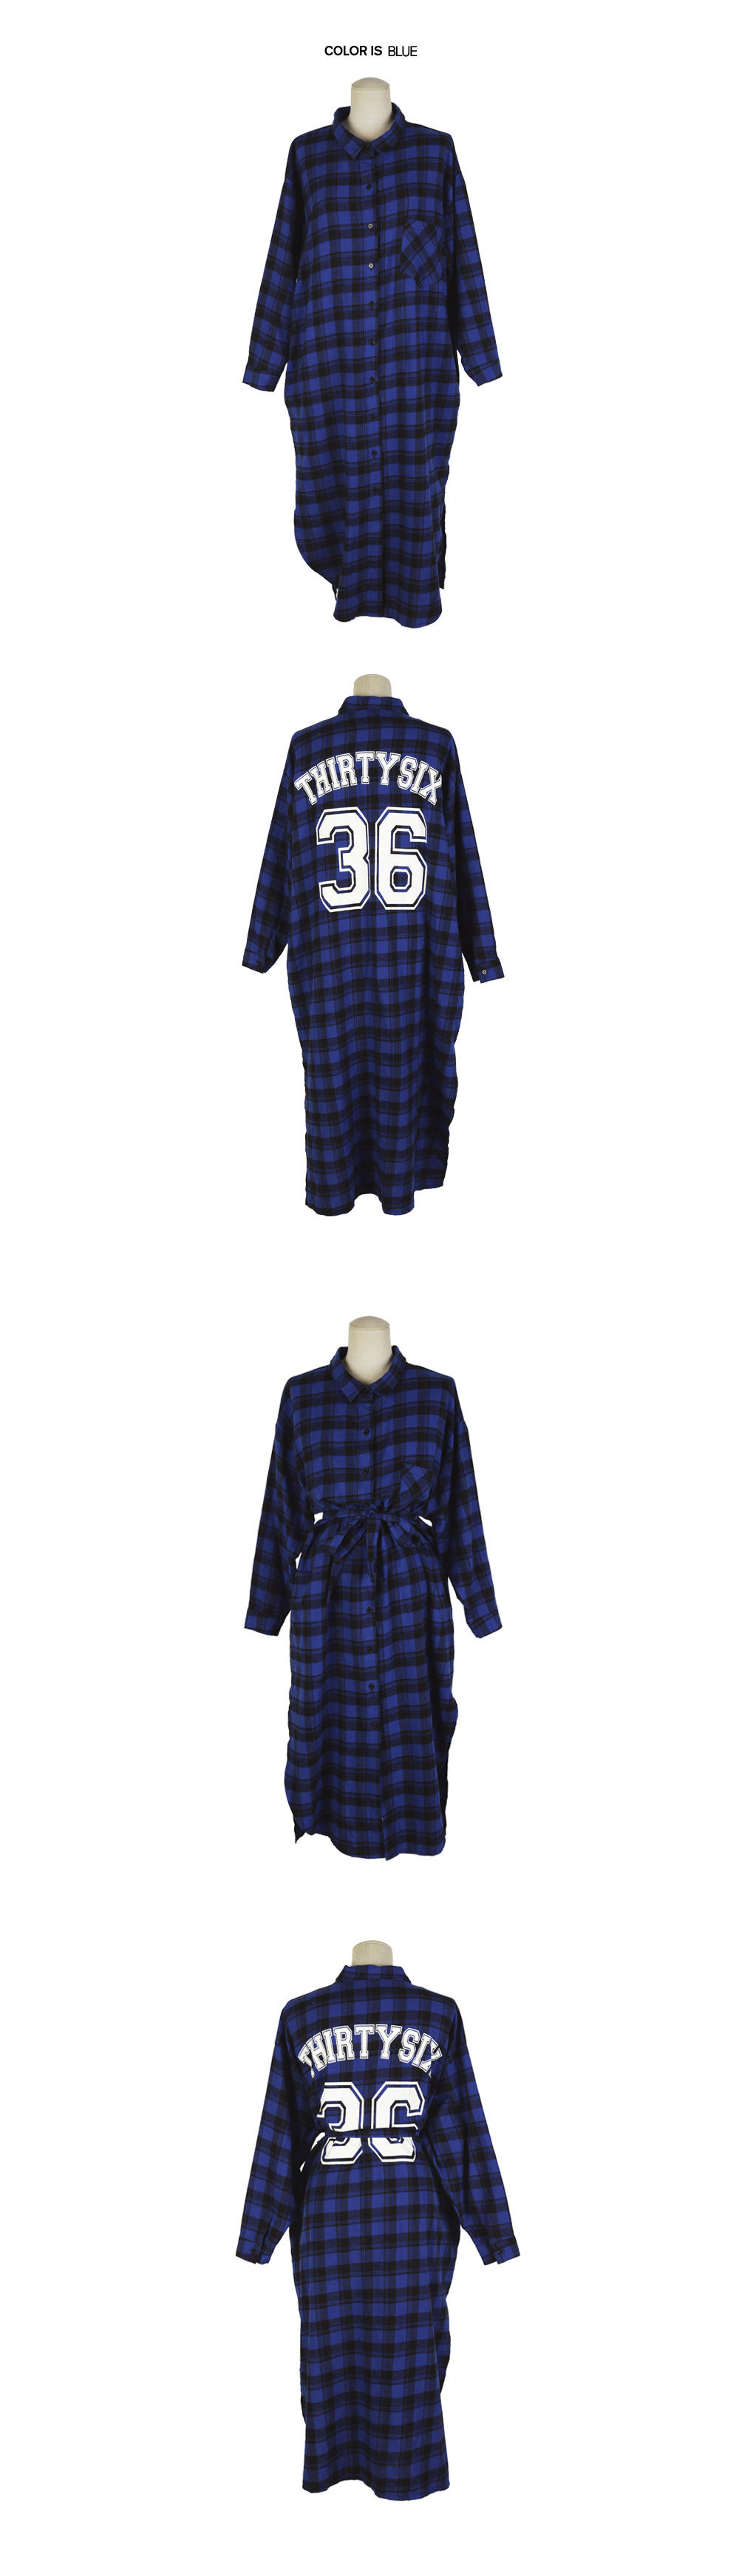 Long Checkered Shirt with 36 Print Back